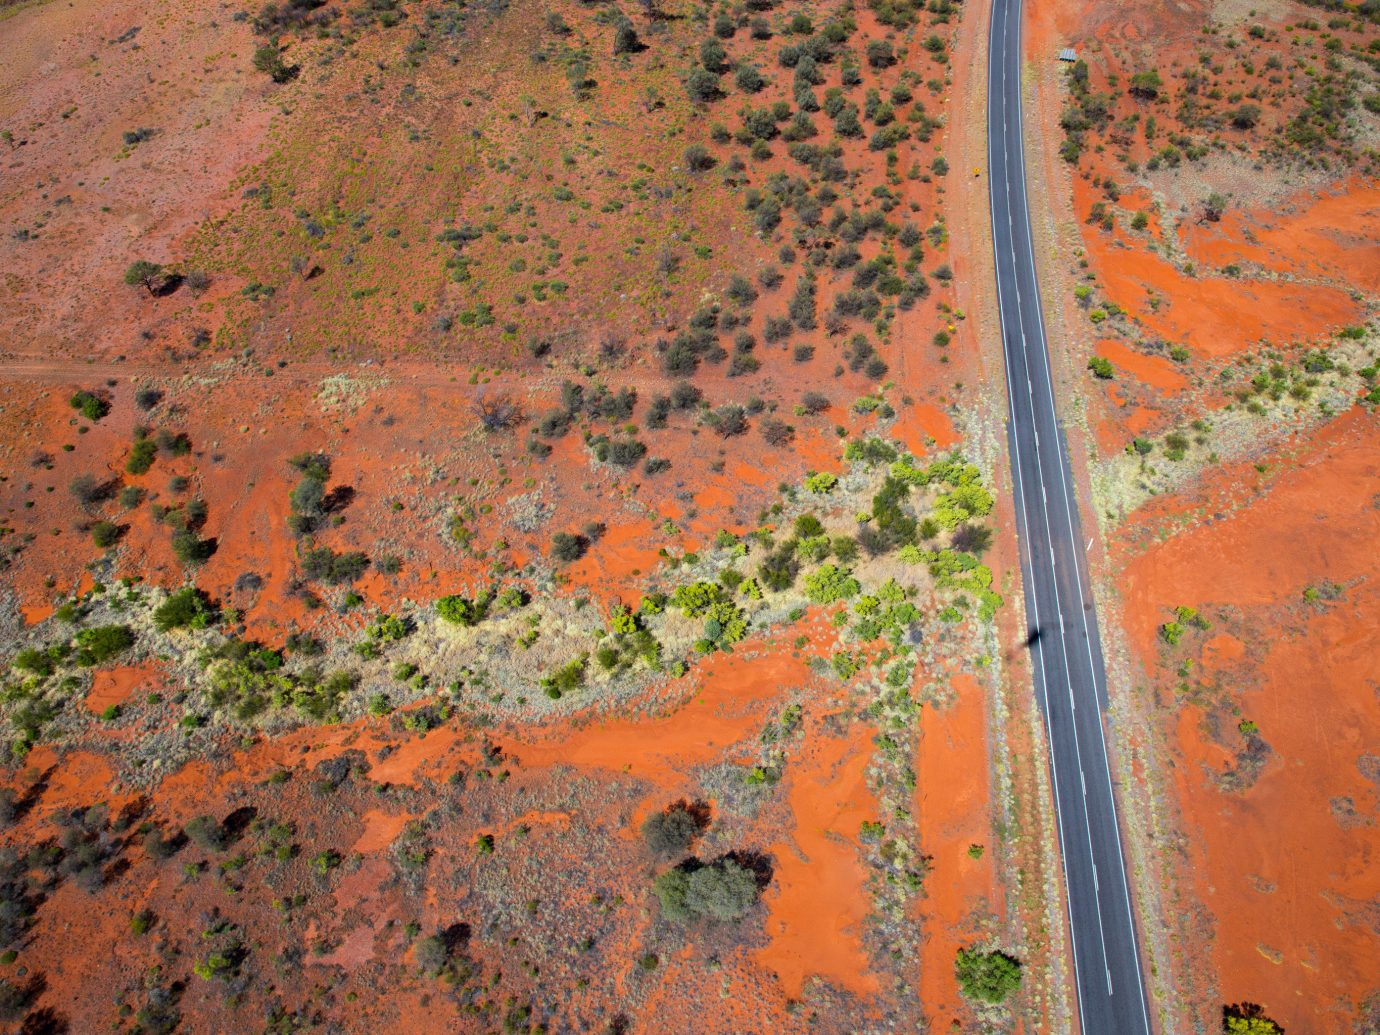 Aerial view of Australian outback